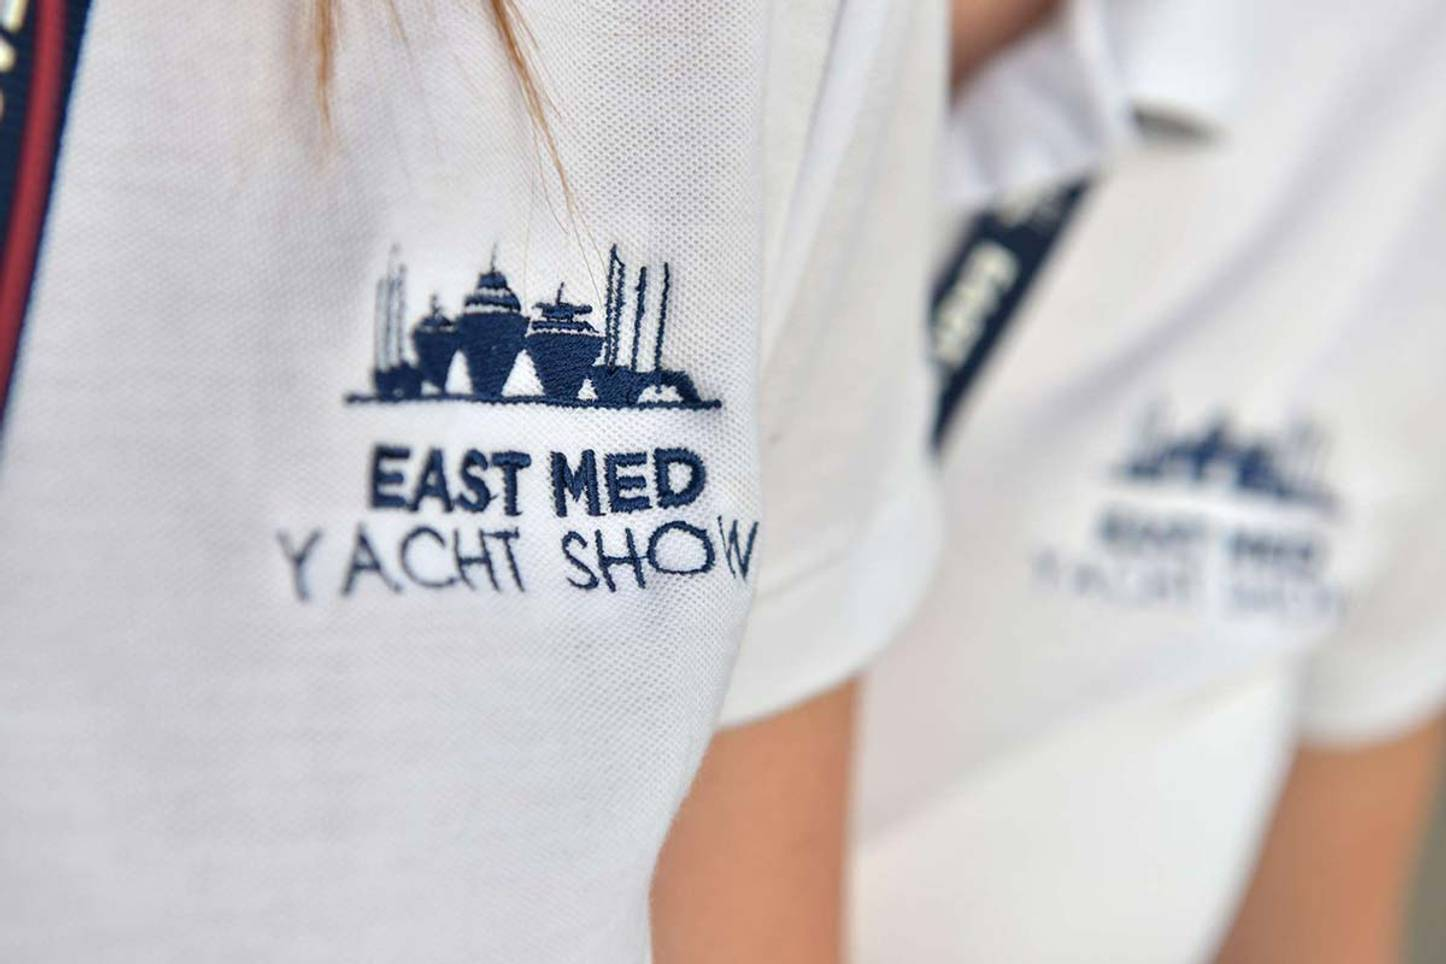 Show organiser wears a t-shirt with 'East Med Yacht Show' motif